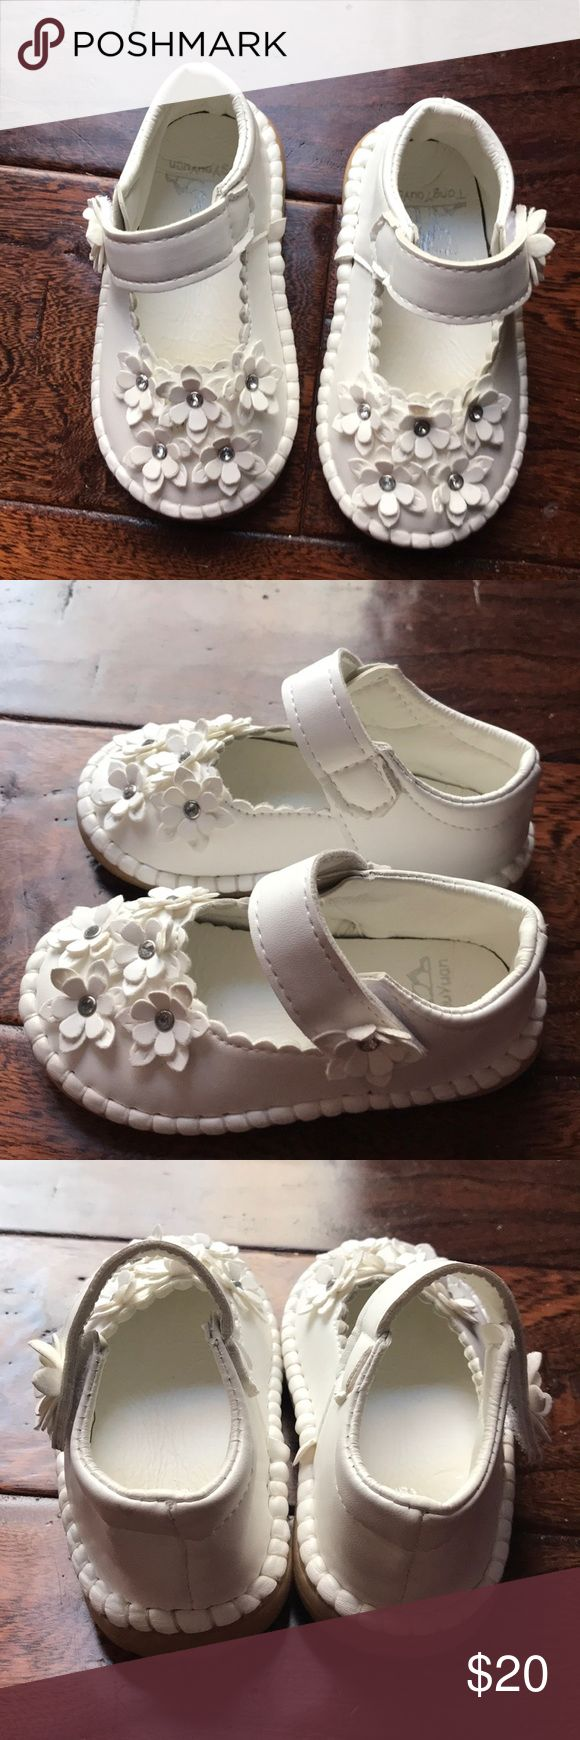 White toddler shoes Super cute white flower toddler shoes size 24 months. I would say they are close to a toddler size 7..  The length of the shoes are about 6 inches and the width is about 3 inches.  These shoes are brand new and never been wore! Shoes